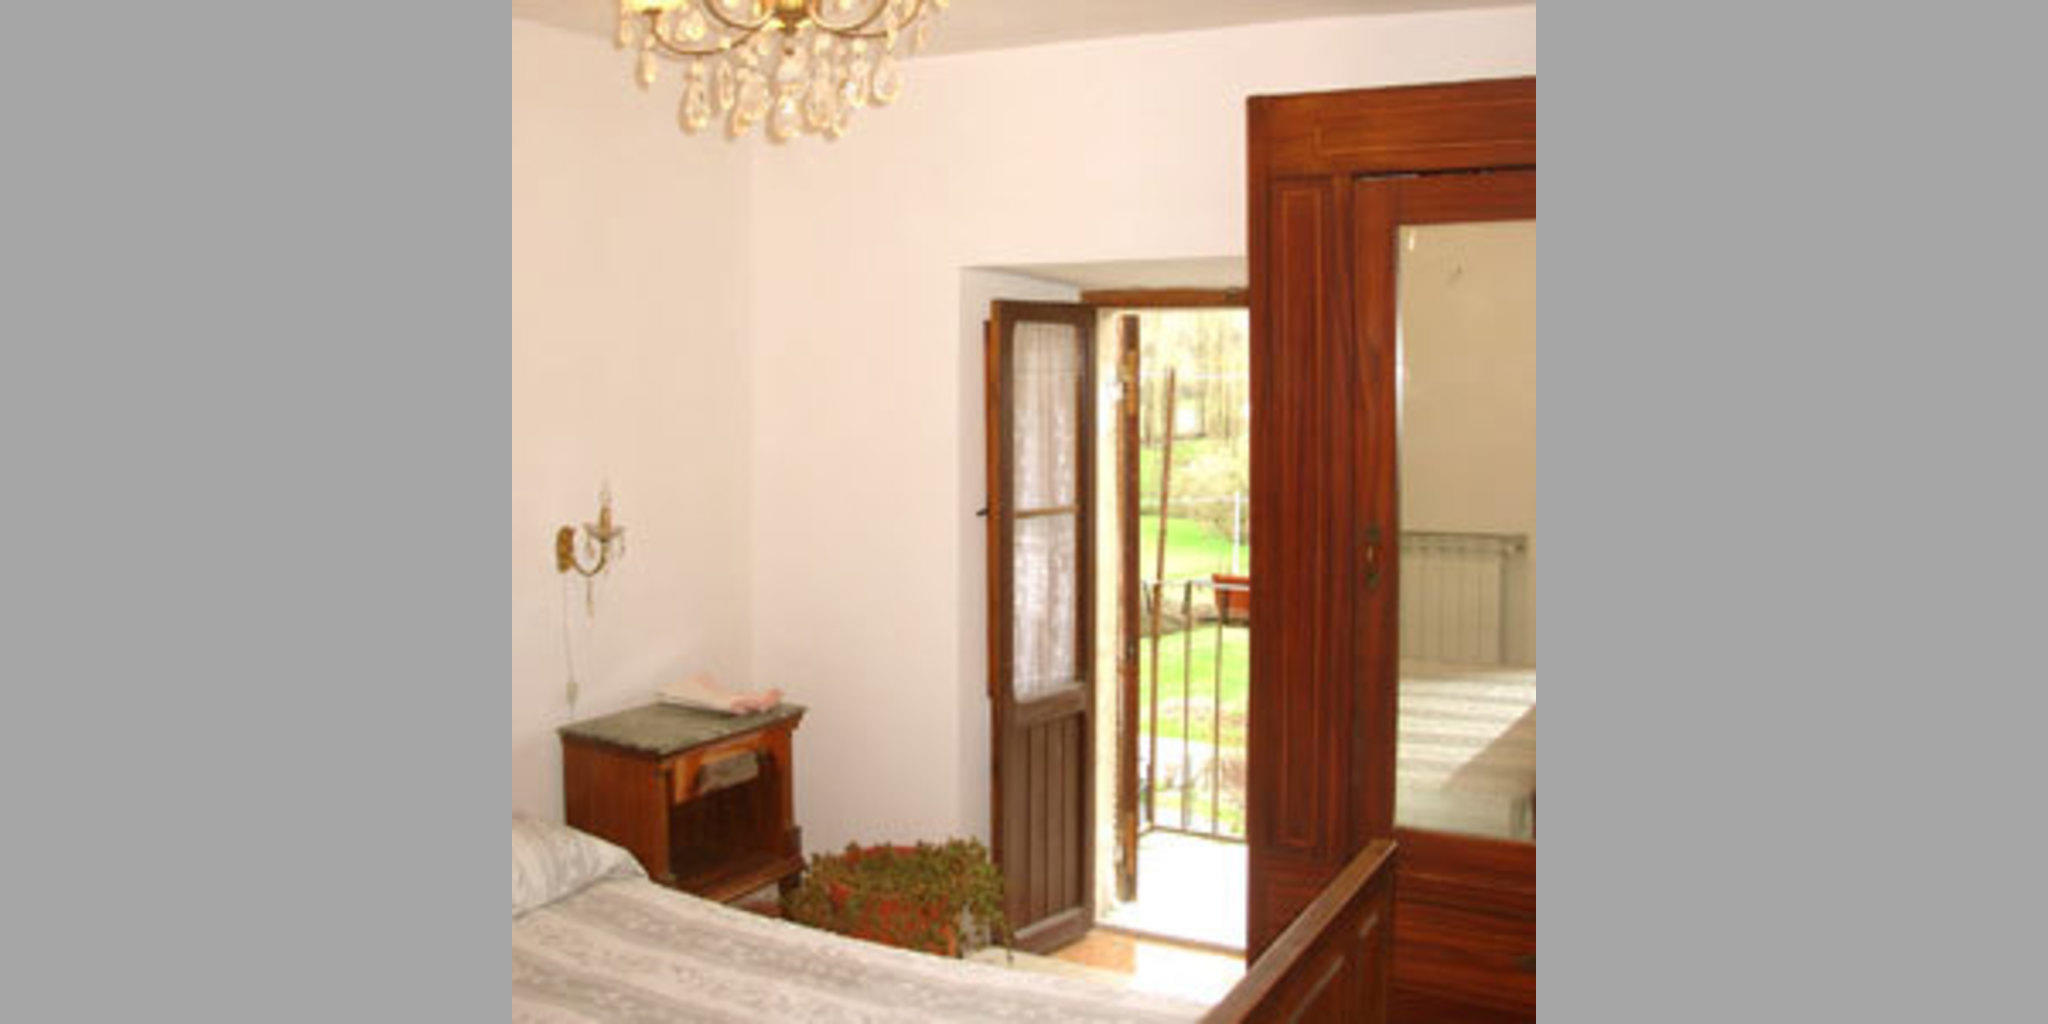 Bed & Breakfast Preci - Borgo